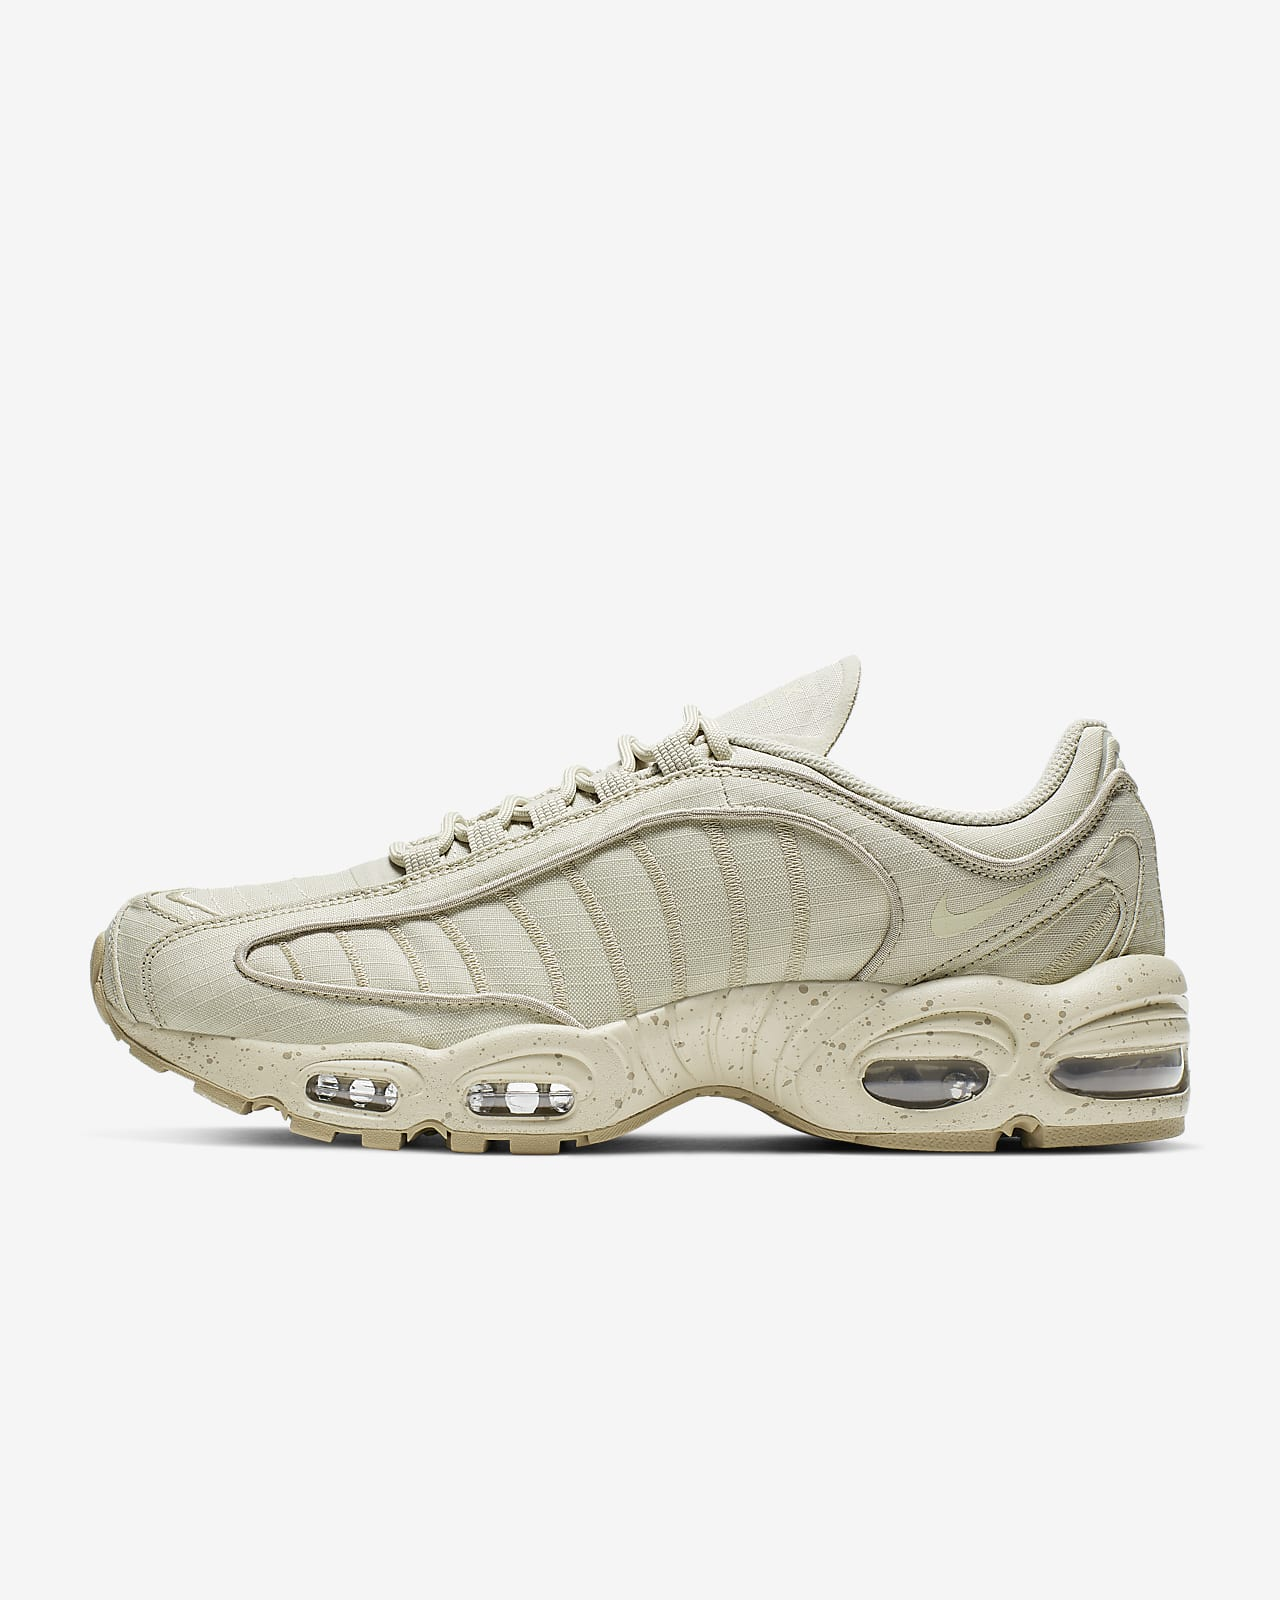 Nike Air Max Tailwind IV SP Men's Shoe